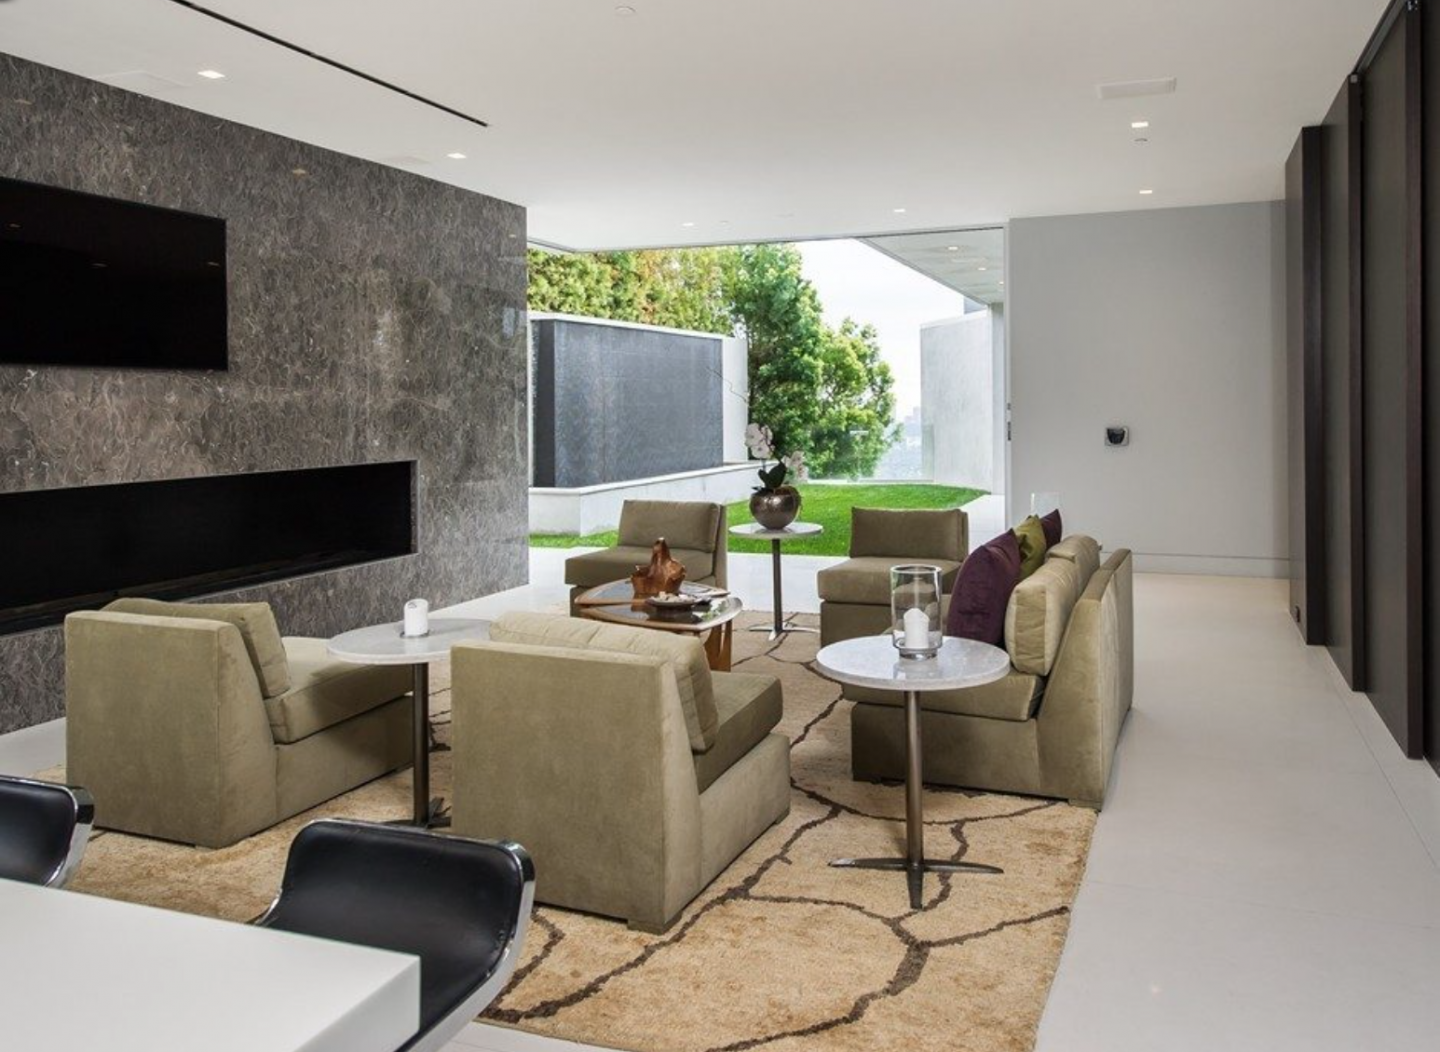 Living space with ample lighting and a modern fireplace